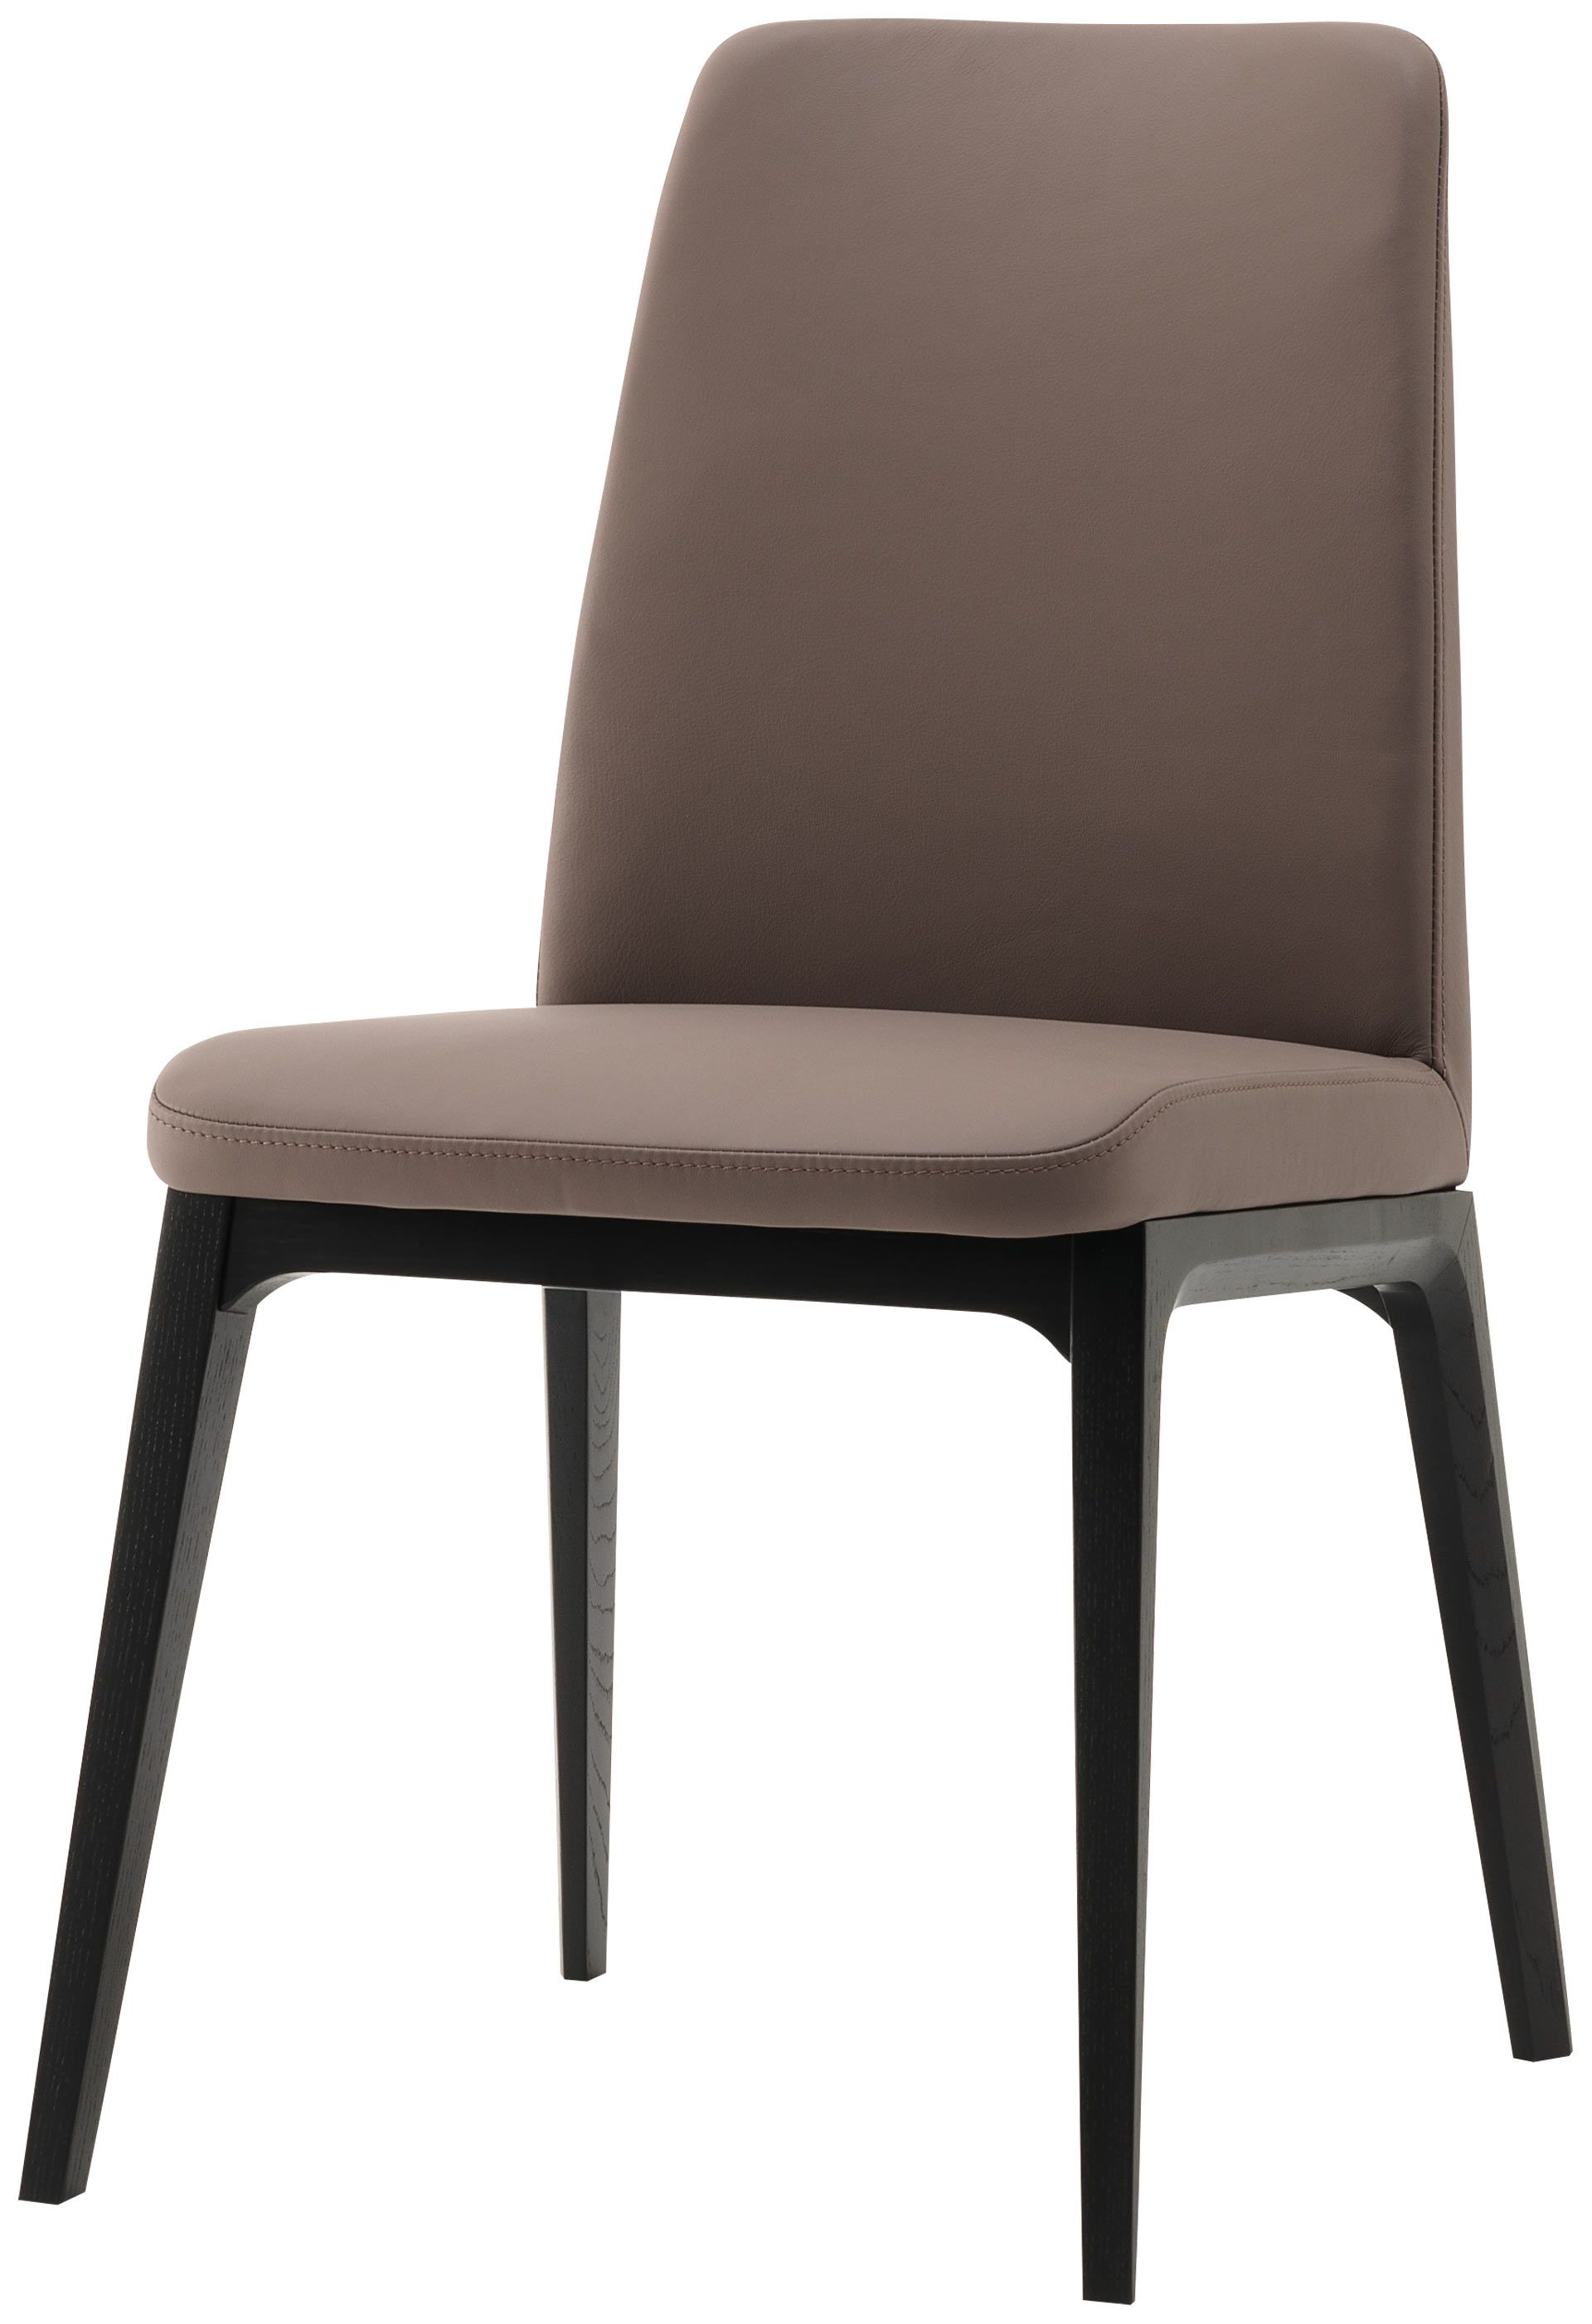 Contemporary Dining Chairs Lausanne Dining Chair Bahia Stone Leather Black Stained